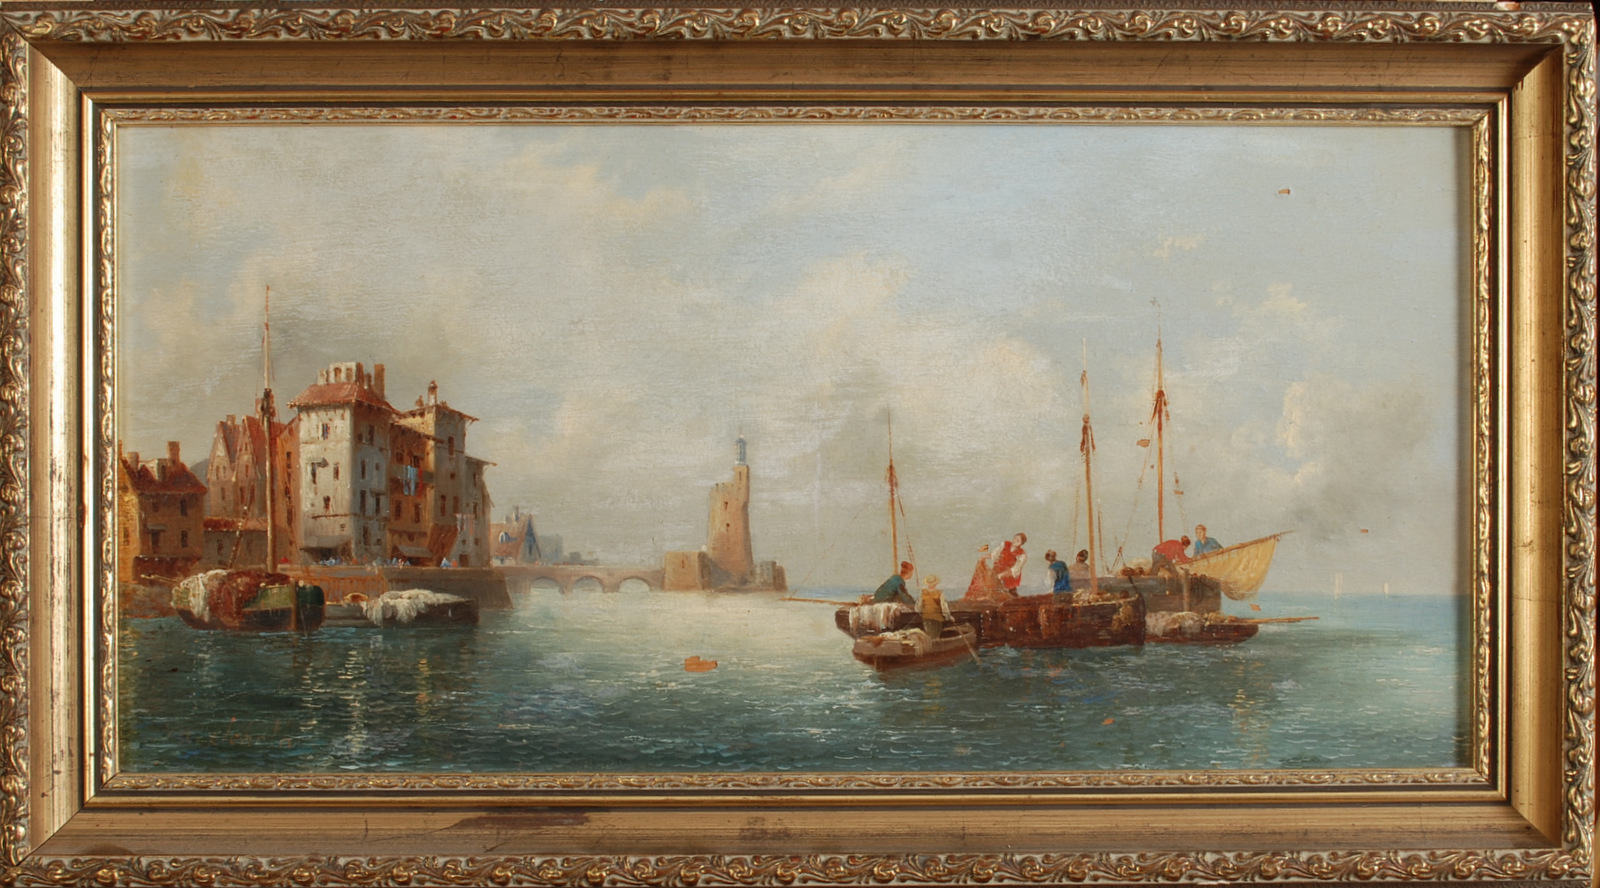 Lot 60 - ANTON SCHOTH Oil on panel Signed 23 x 45 cm Condition report: Condition report -